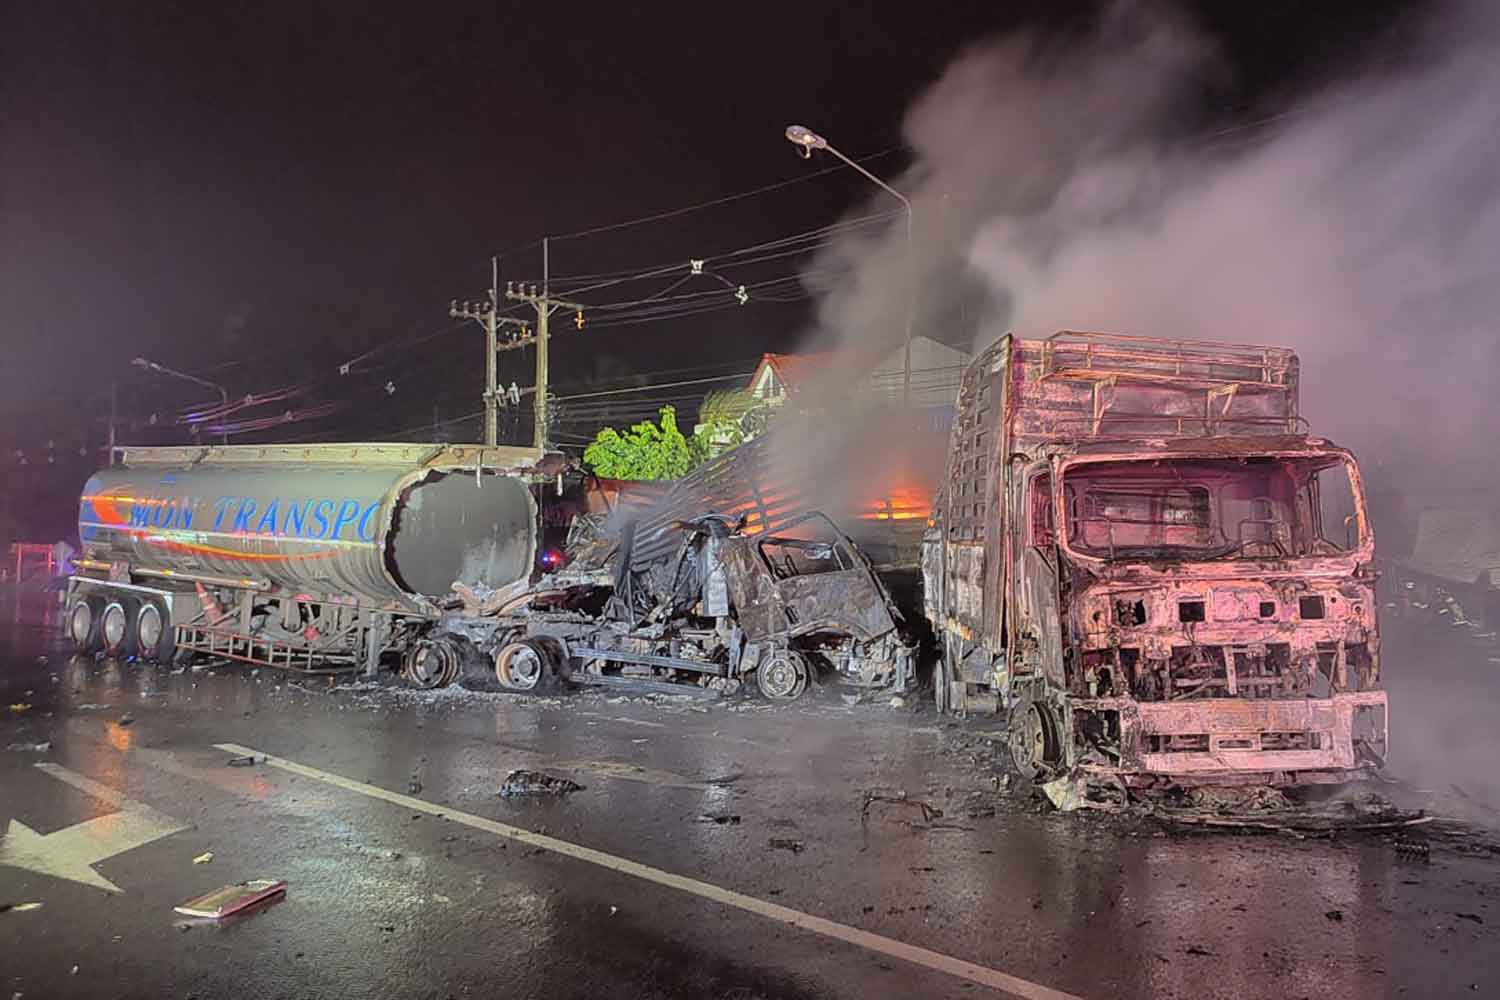 The burning fuel tanker and trailer truck after the collision in Nong Ki district, Buri Ram, early Thursday morning. (Photo: Surachai Piragsa)